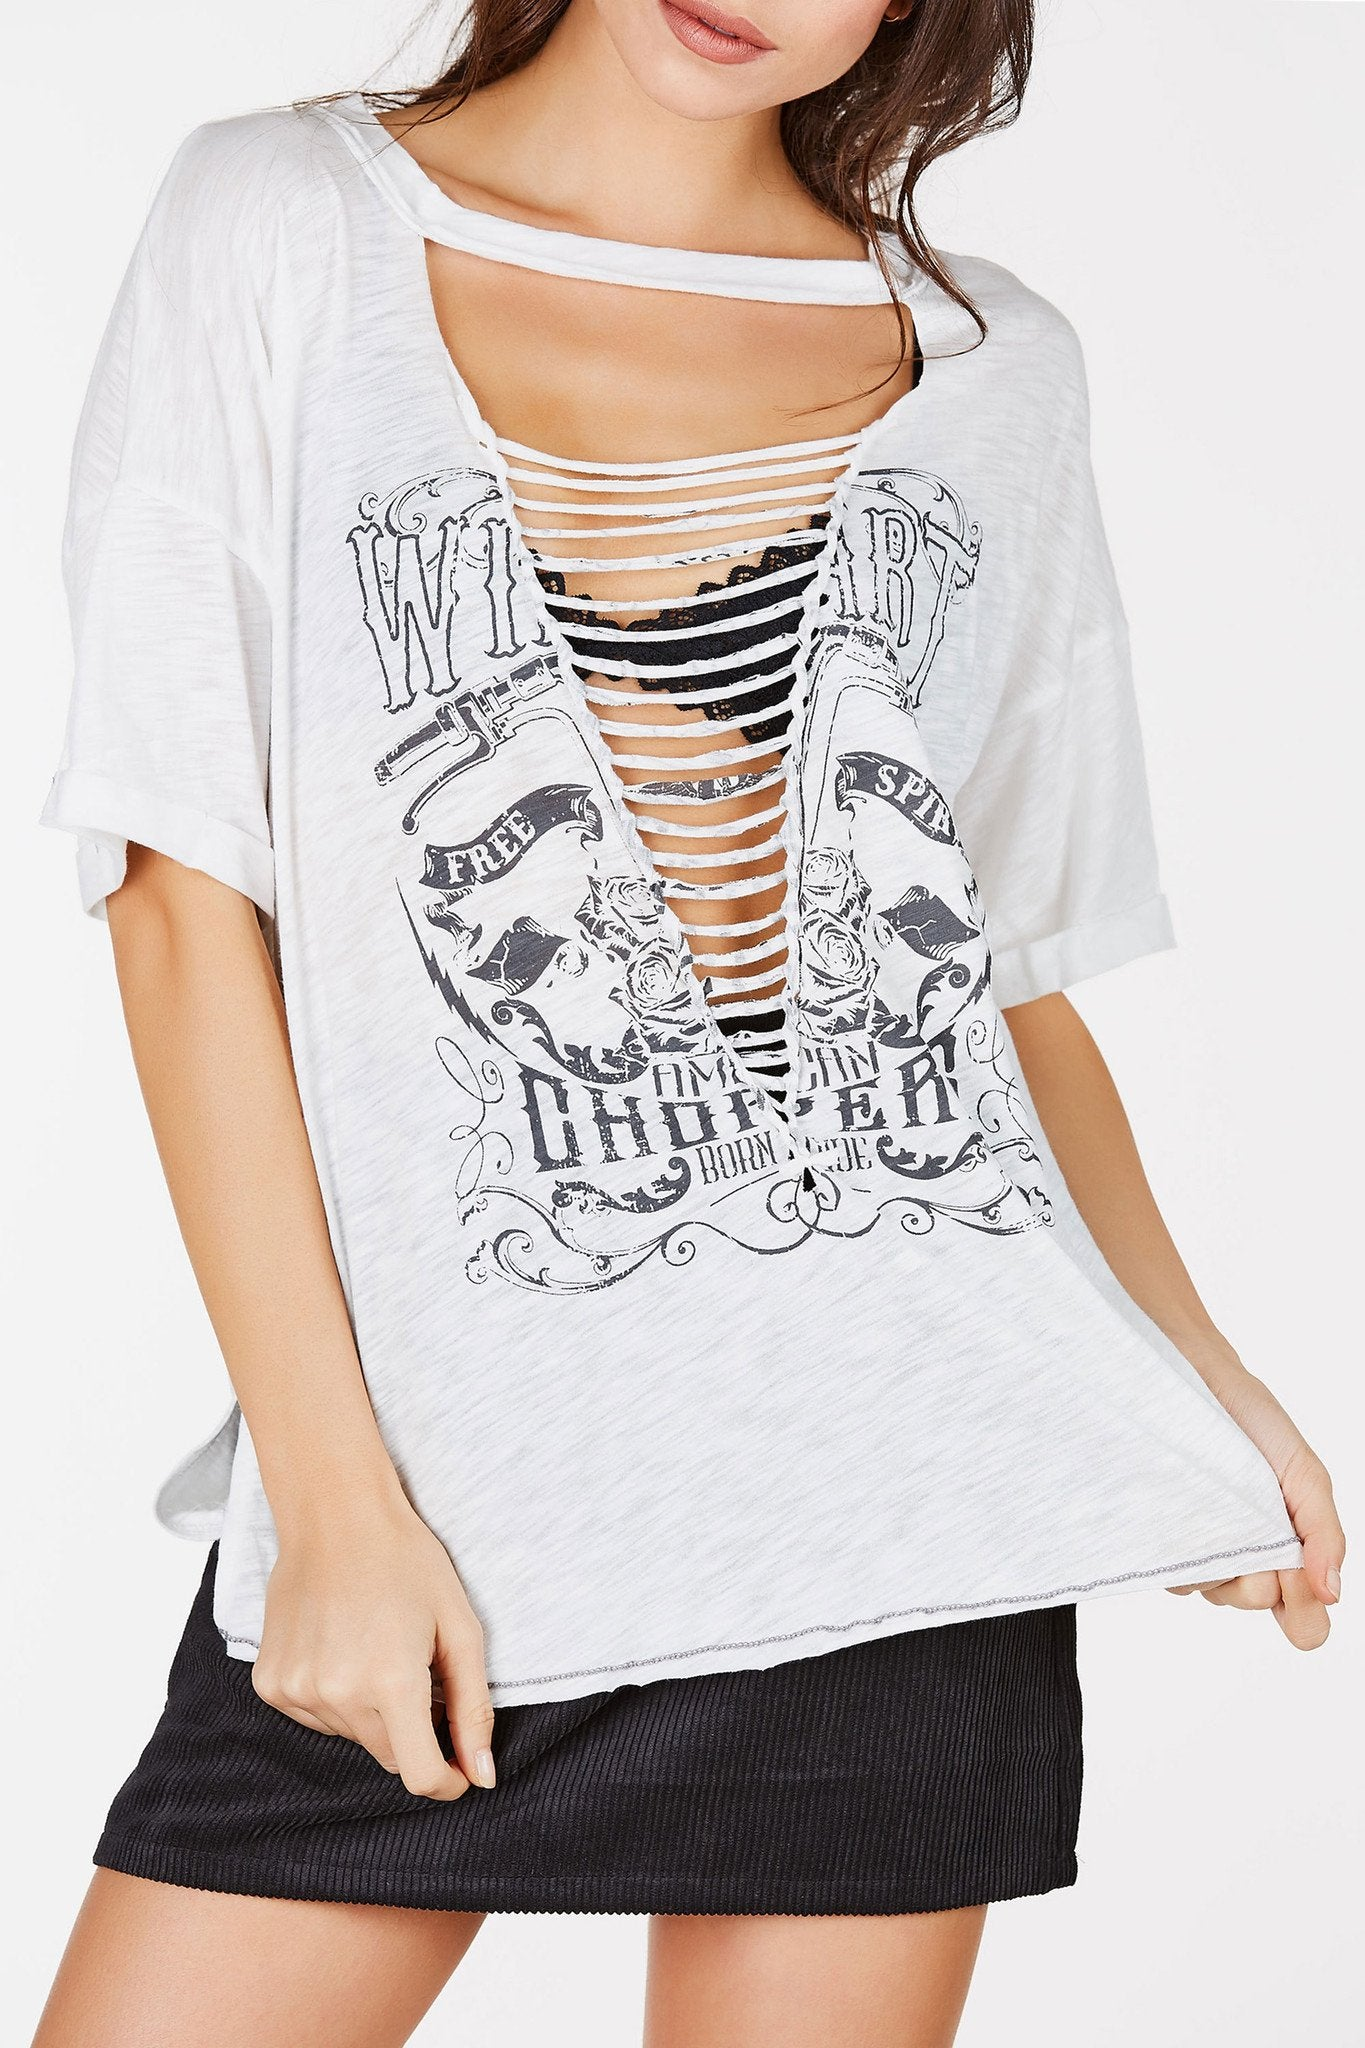 Oversized short sleeve tee with graphic in front. Wide neck with plunging cut out with twisted strap detailing.